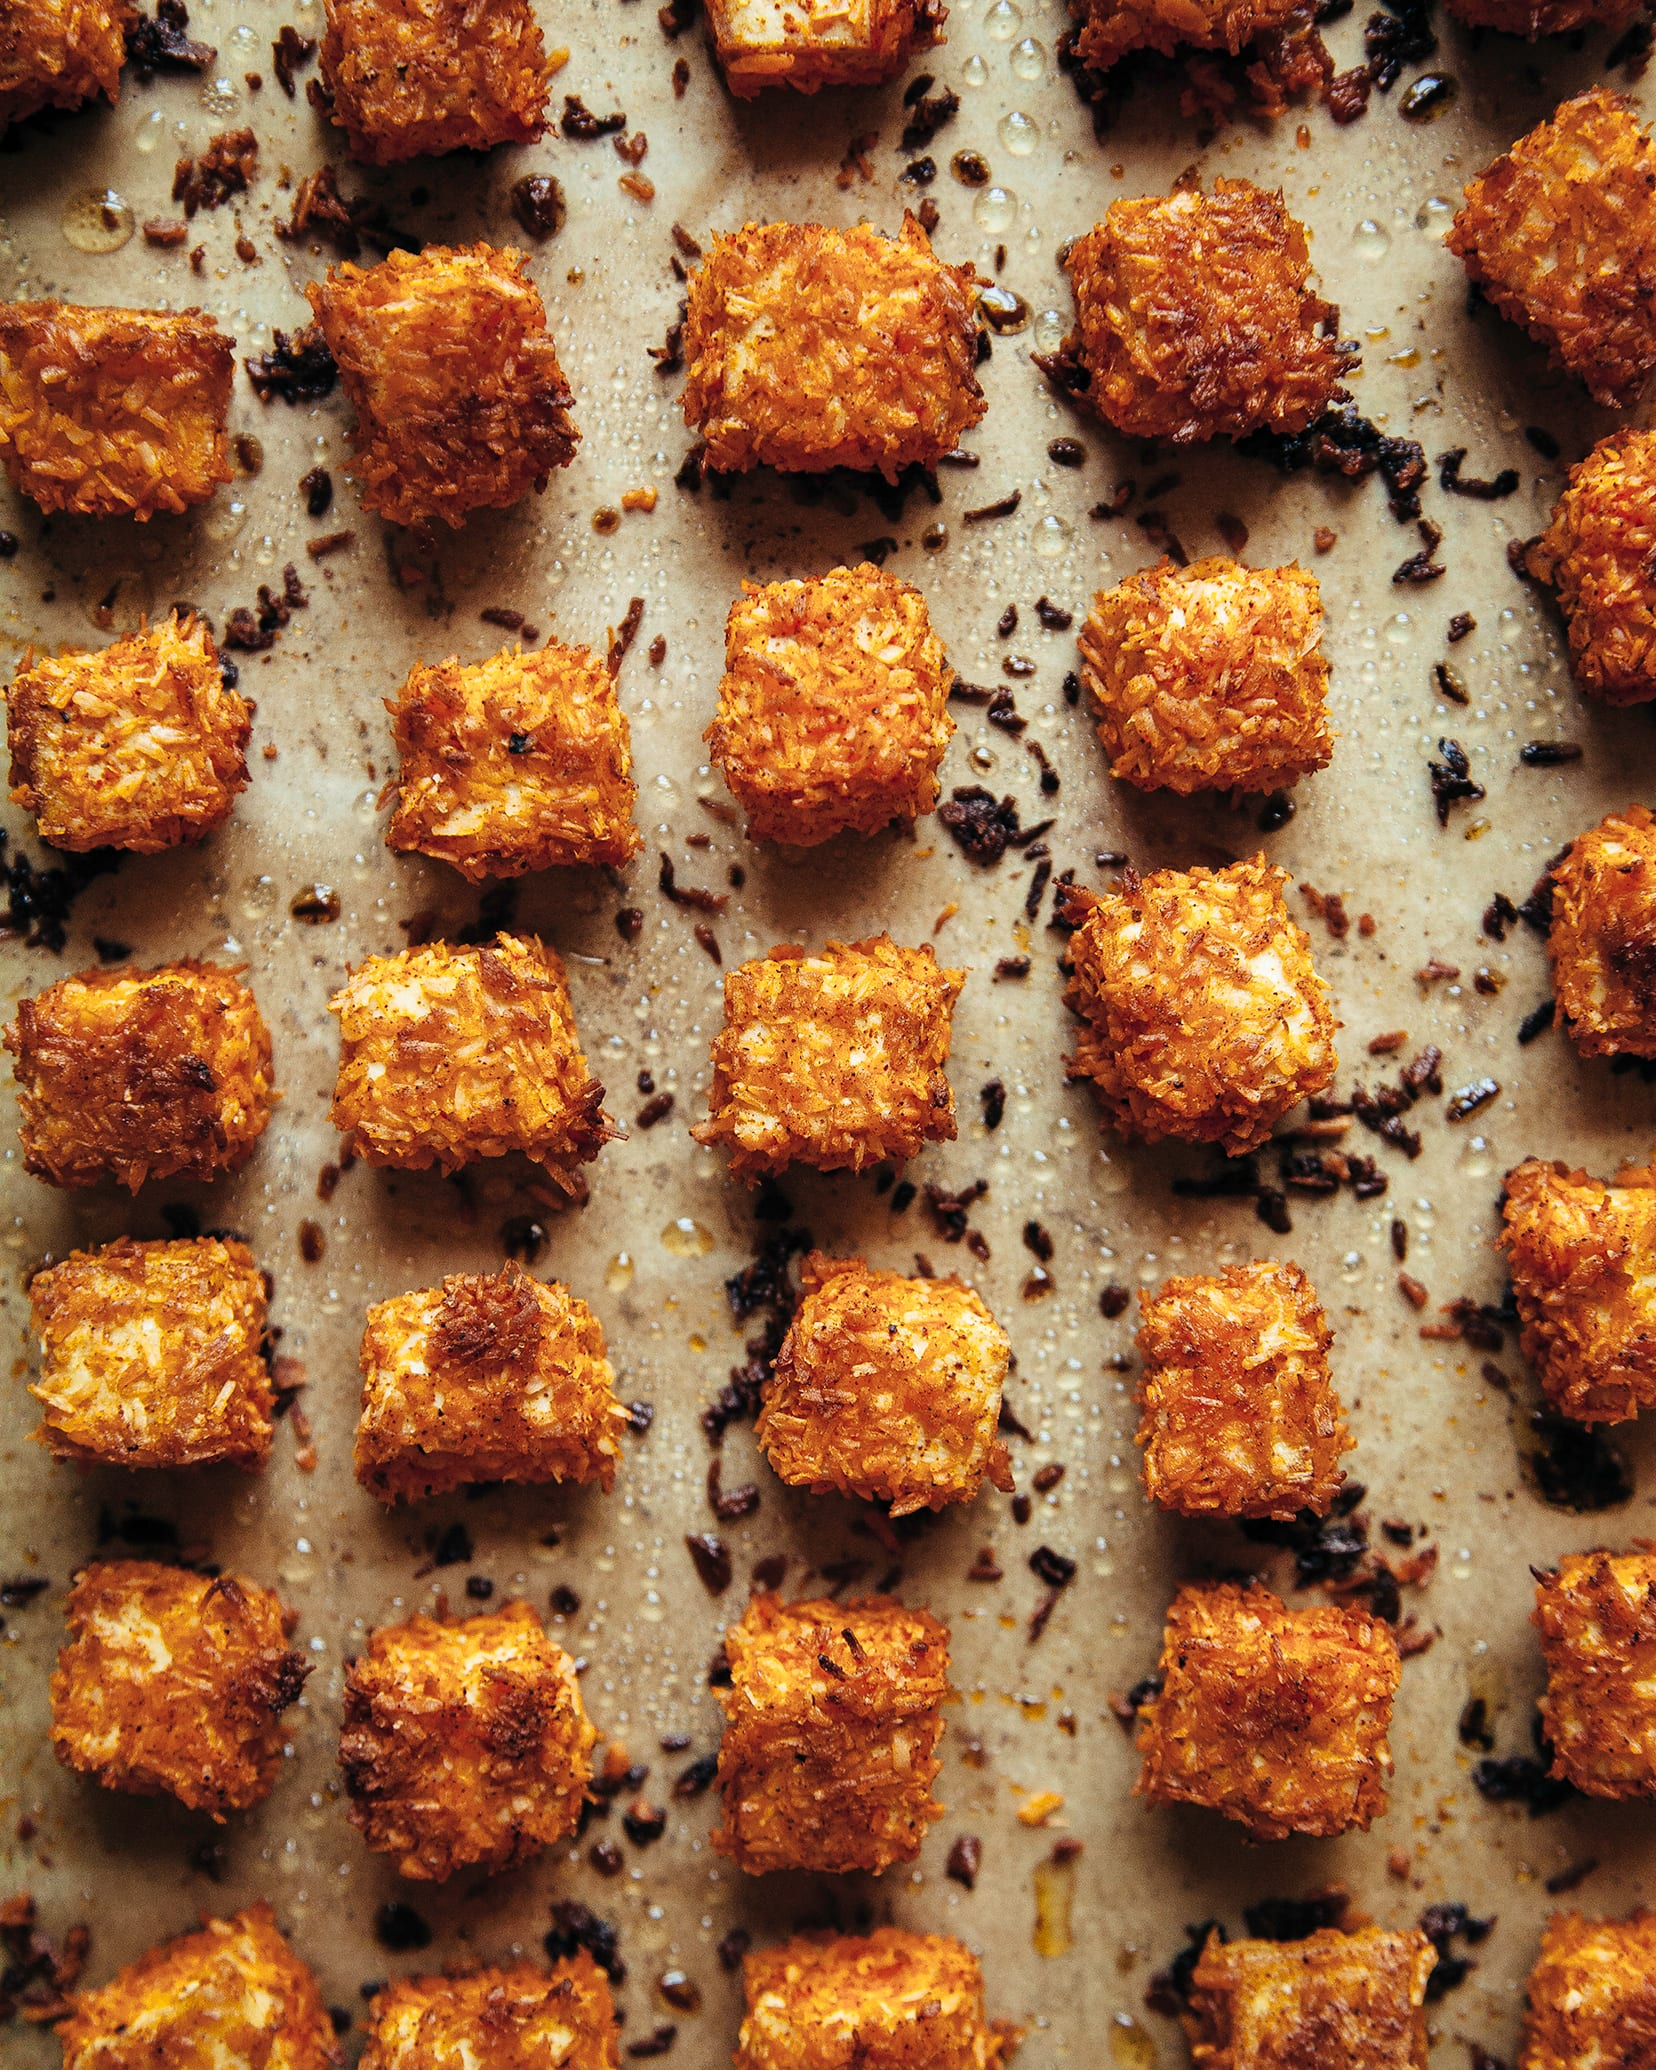 An overhead shot of crispy coconut tofu after baking, on a parchment lined baking sheet.